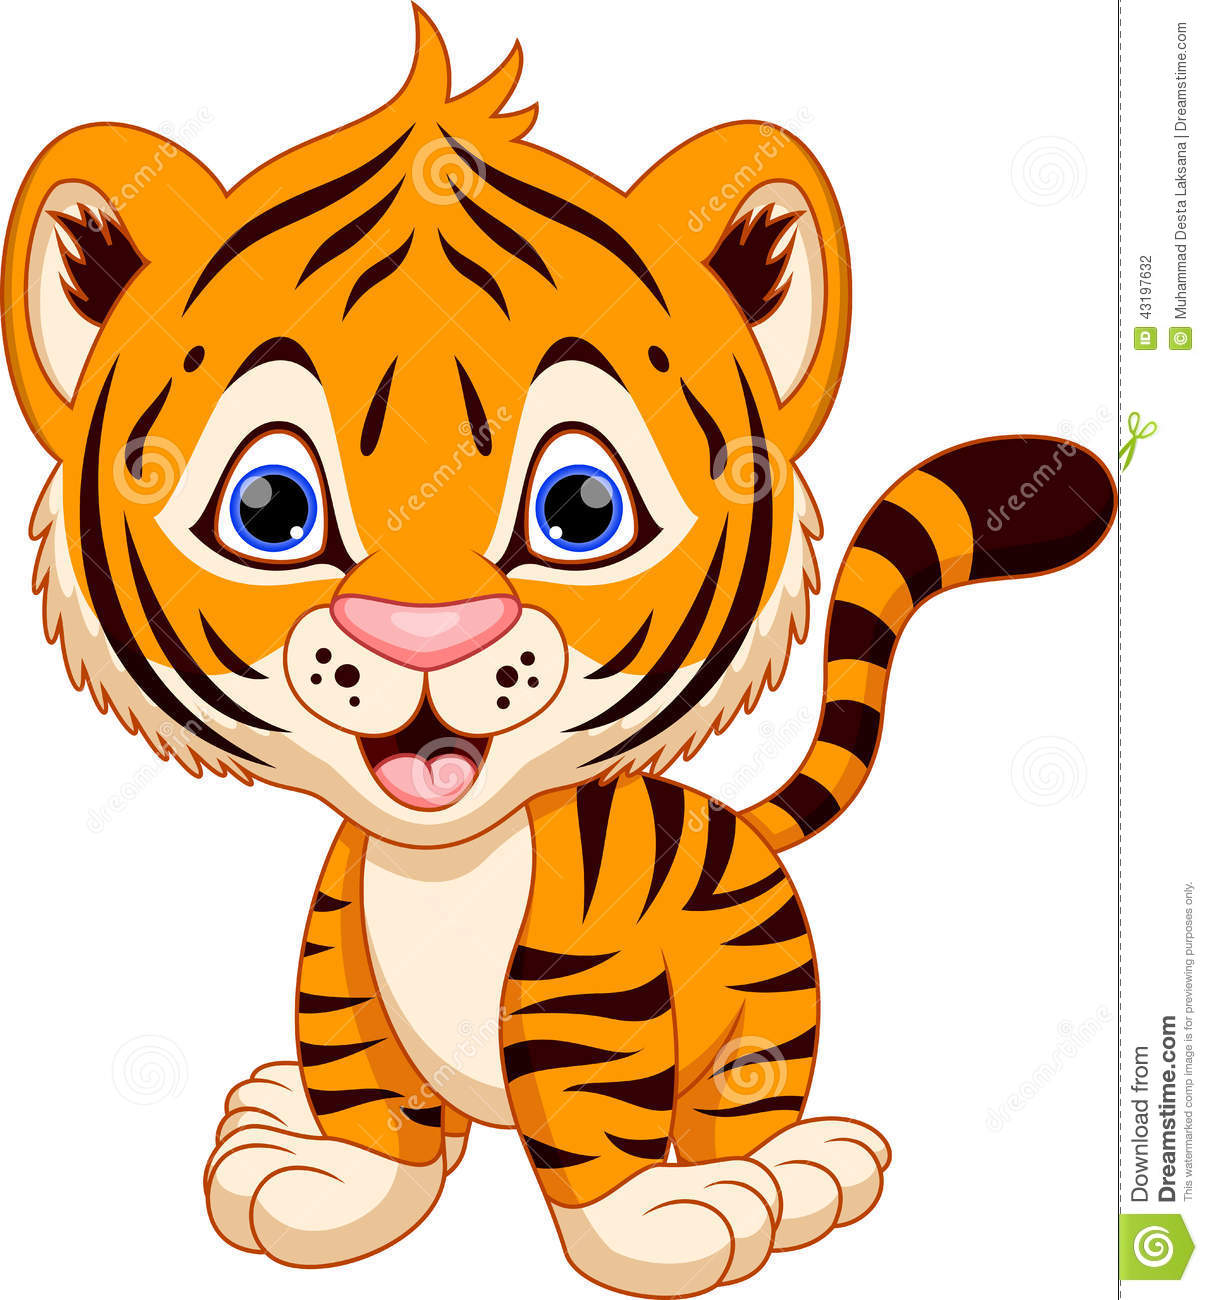 cute baby tiger cartoon stock illustration image of jaguar school mascot clipart jaguar school mascot clipart